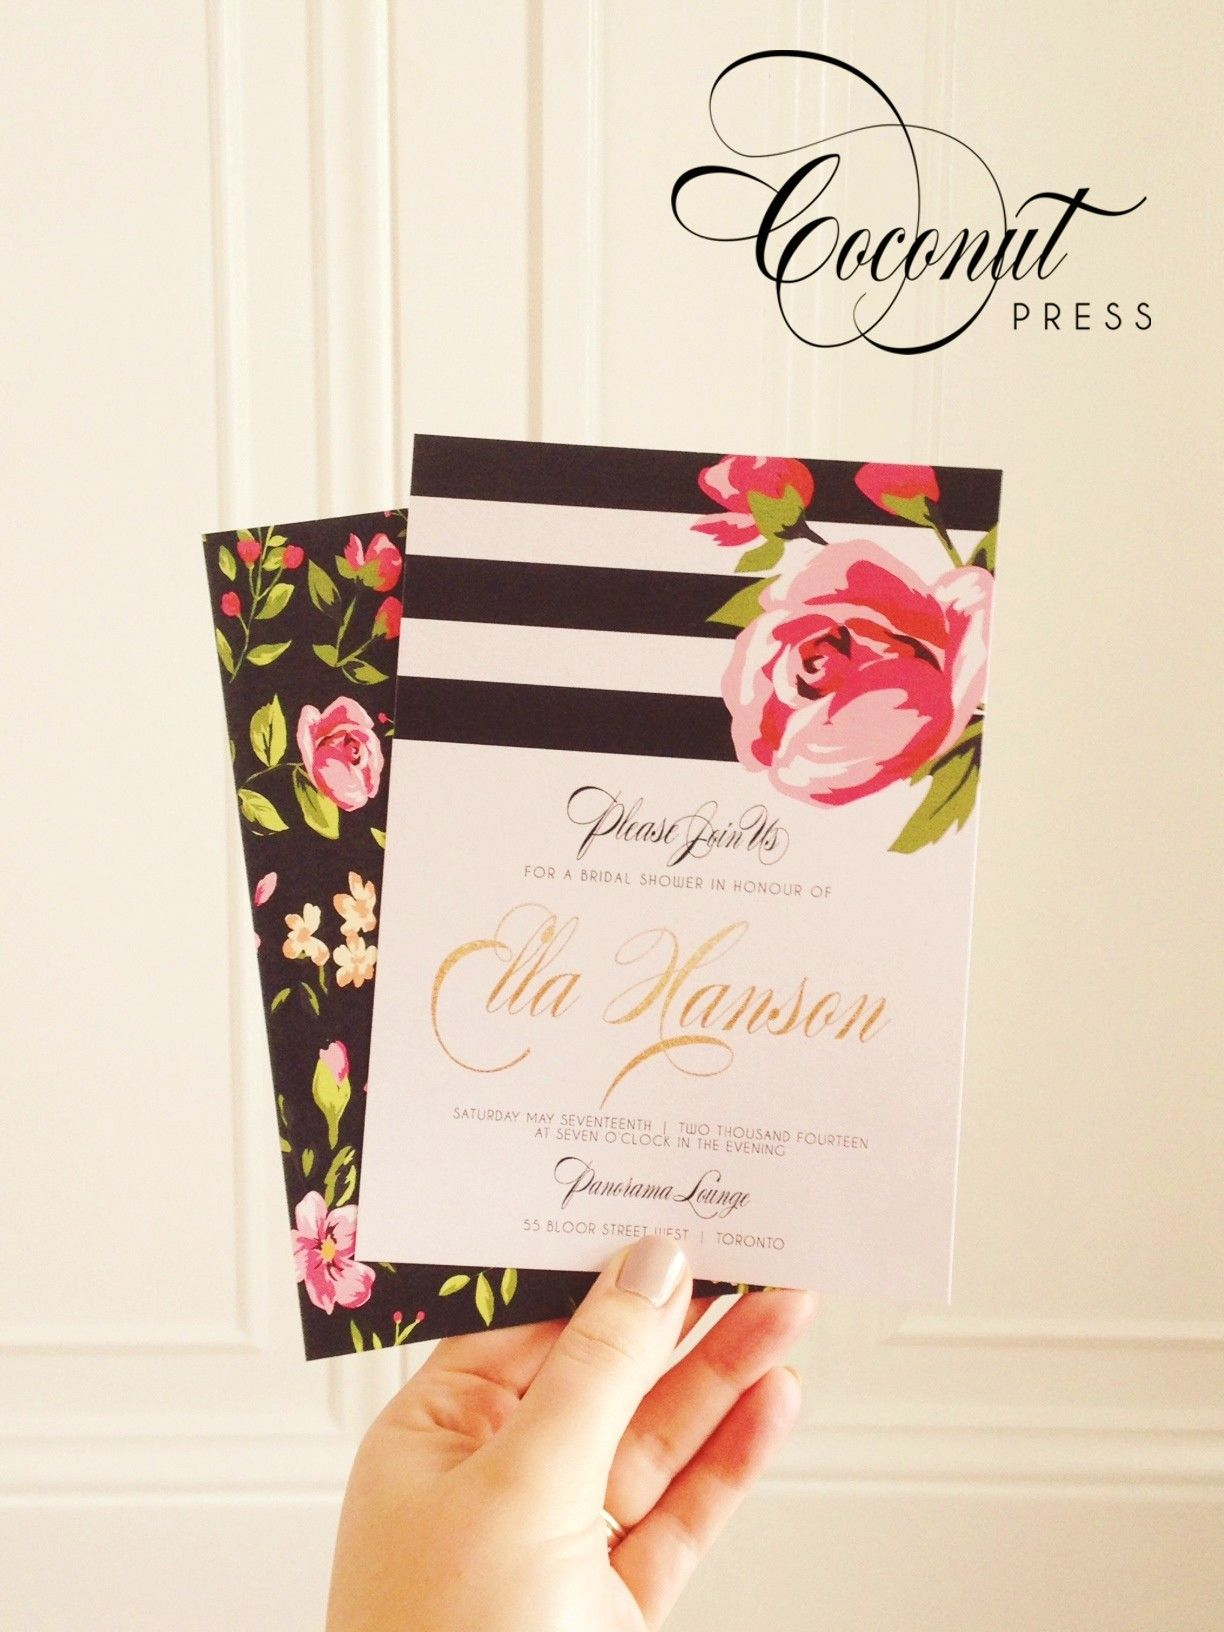 Glamorous floral print bridal shower invitations double sided glamorous floral print bridal shower invitations double sided stripes pink gold filmwisefo Image collections